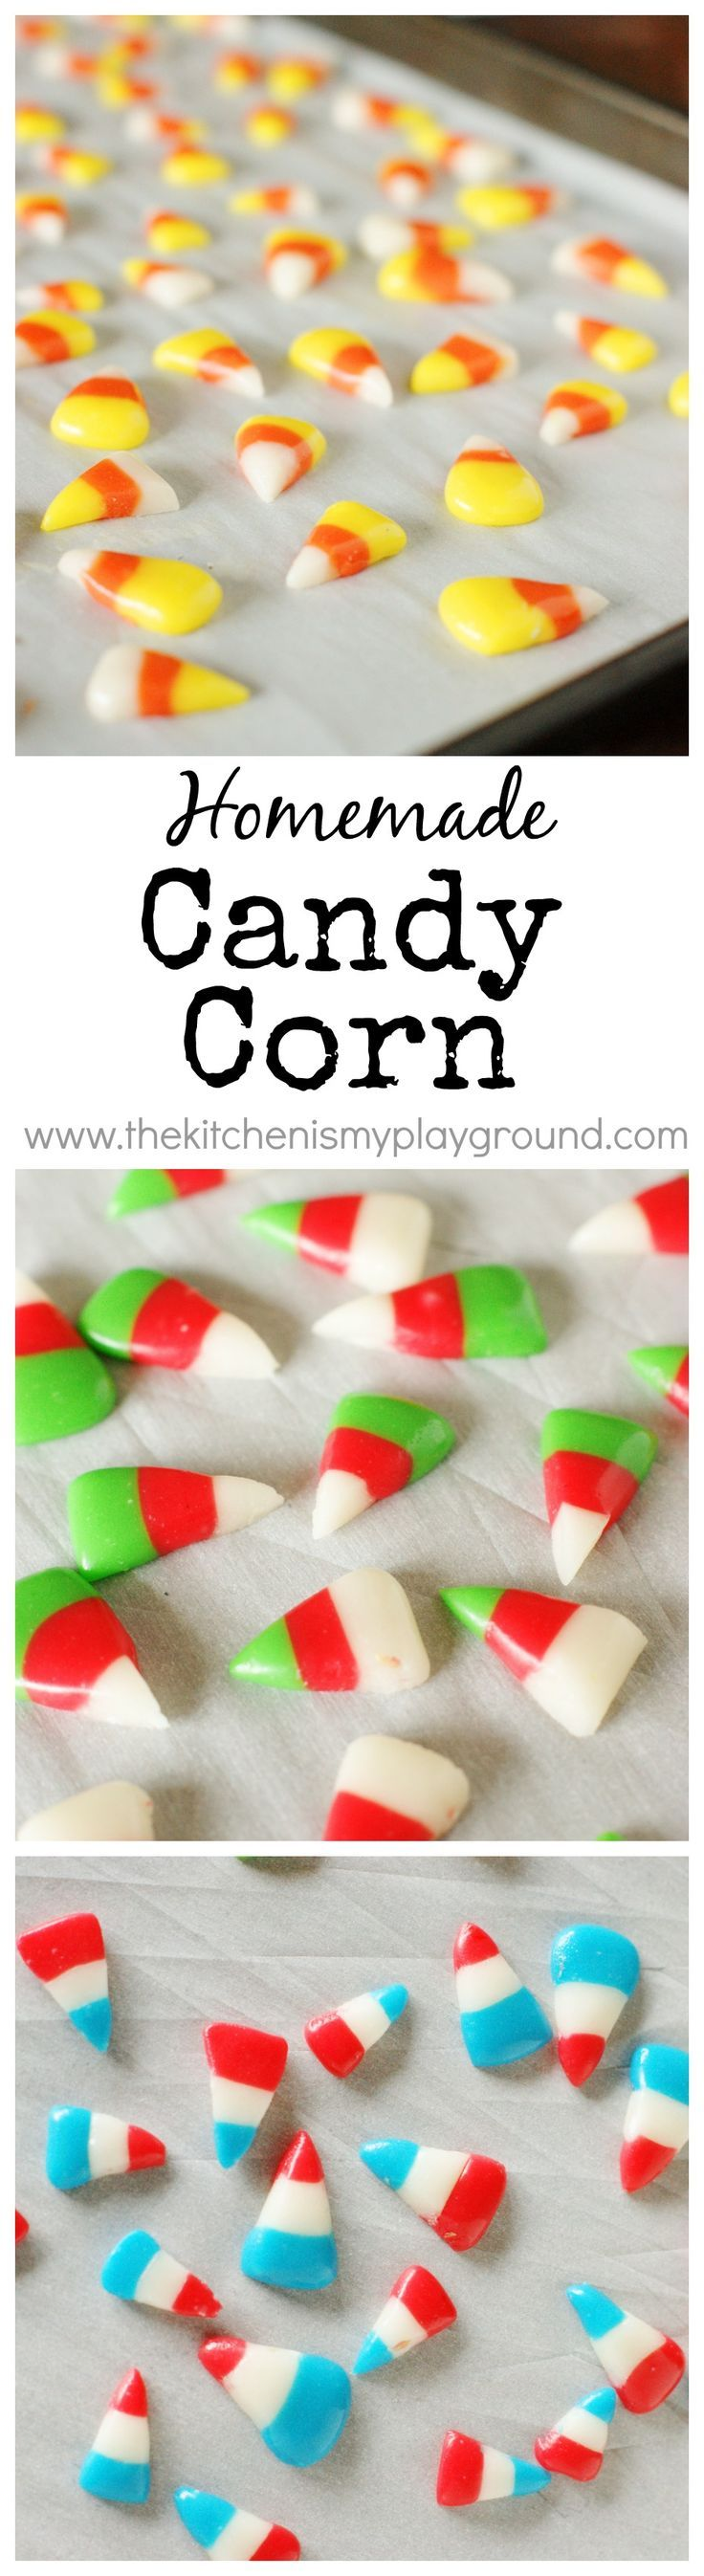 Homemade Candy Corn ~ make it in any colors for any occasion! www.thekitchenismyplayground.com